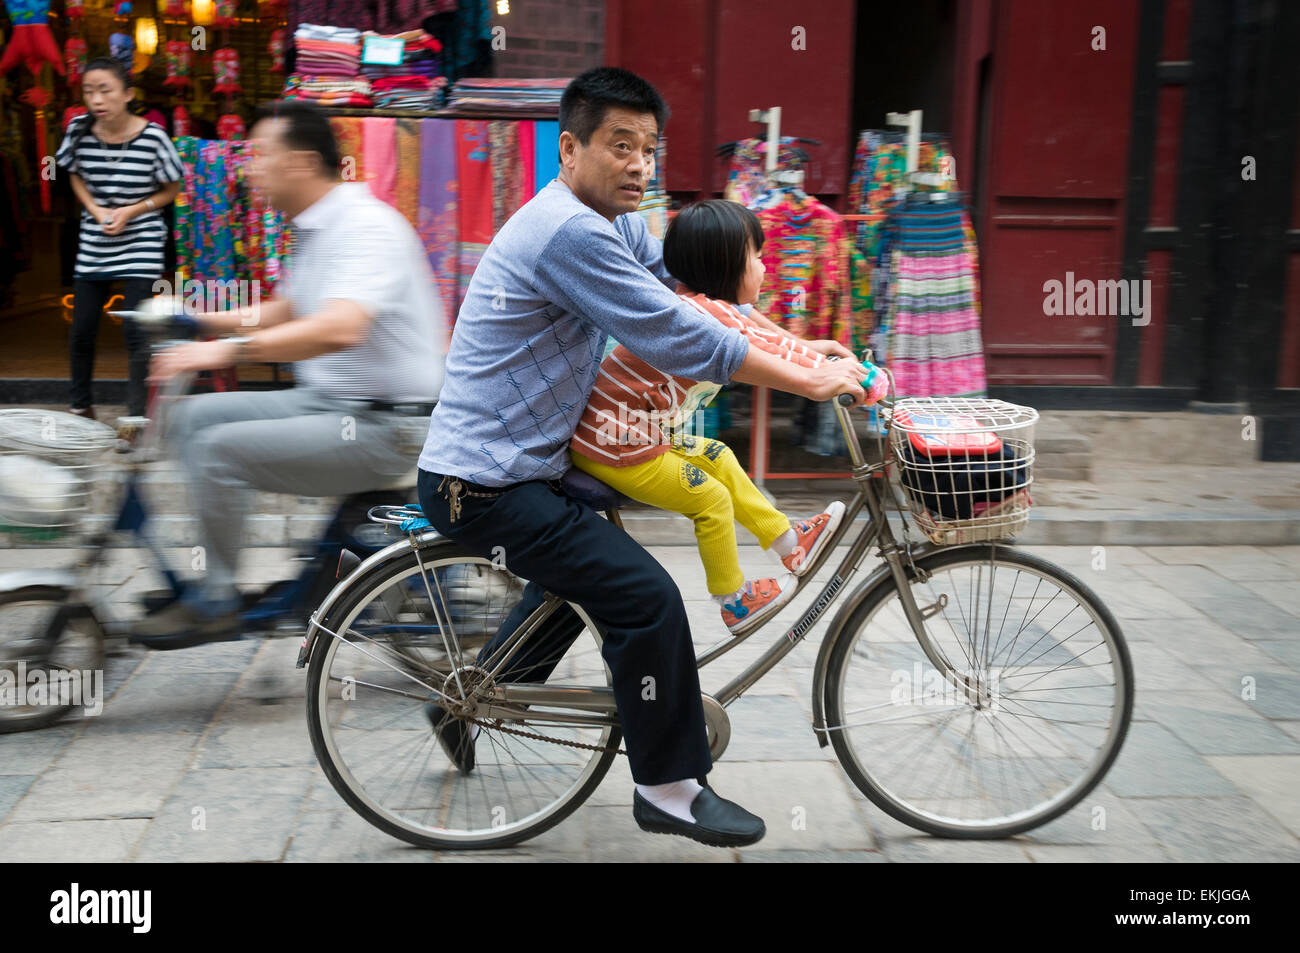 Young daughter shares bicycle with father in the ancient walled city of Pingyao, Shanxi Province, China. - Stock Image